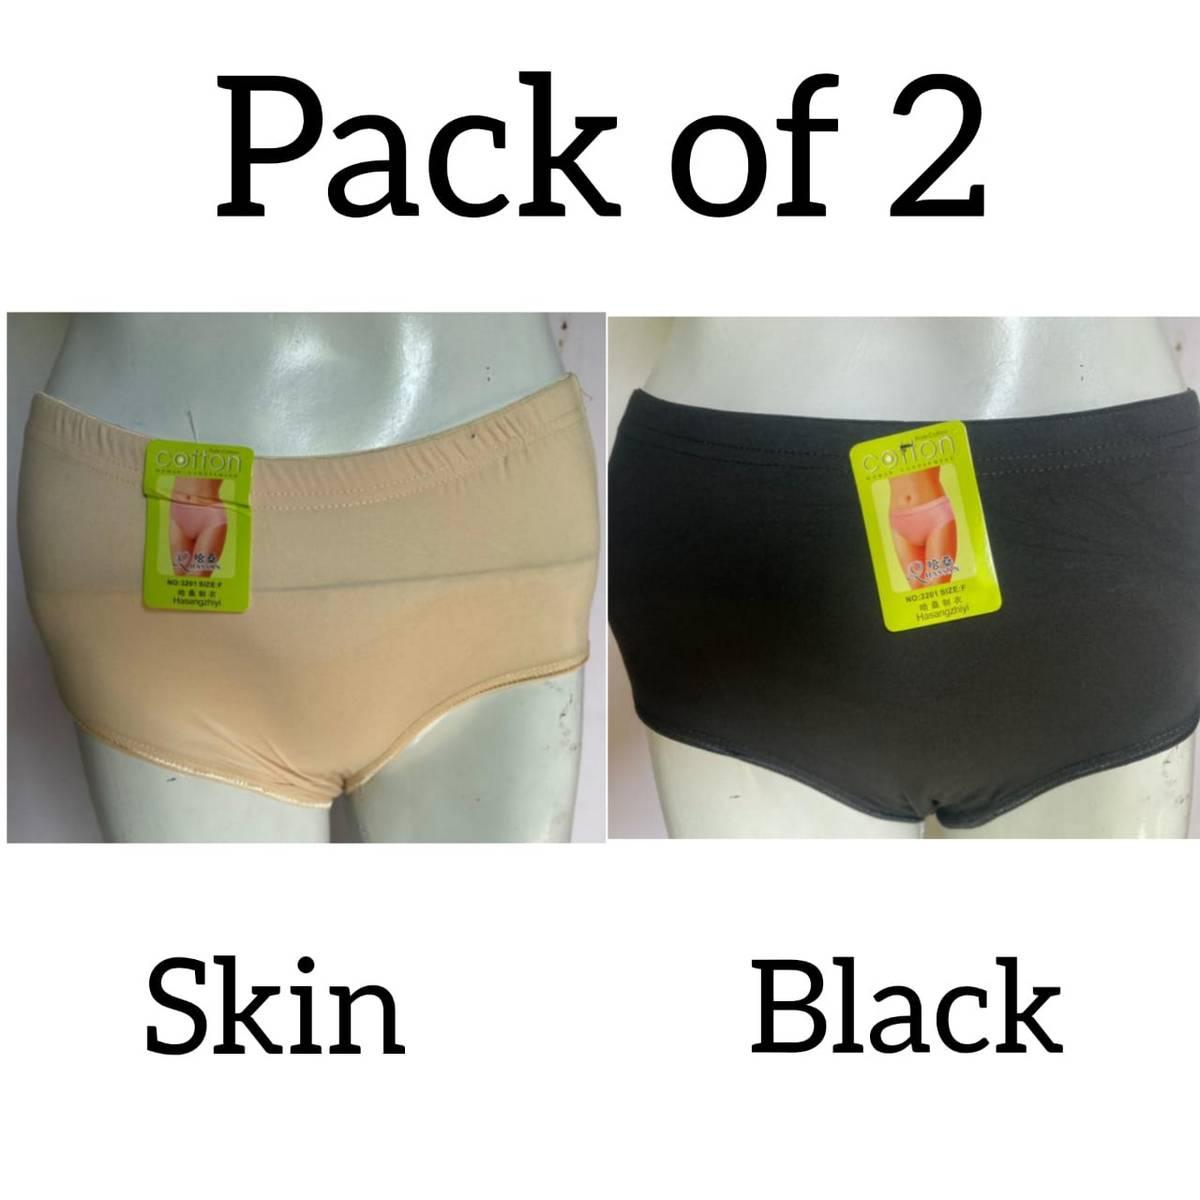 Pack of 2 Soft Cotton UnderWear Panty for Women (Pack of 2) Black and Skin